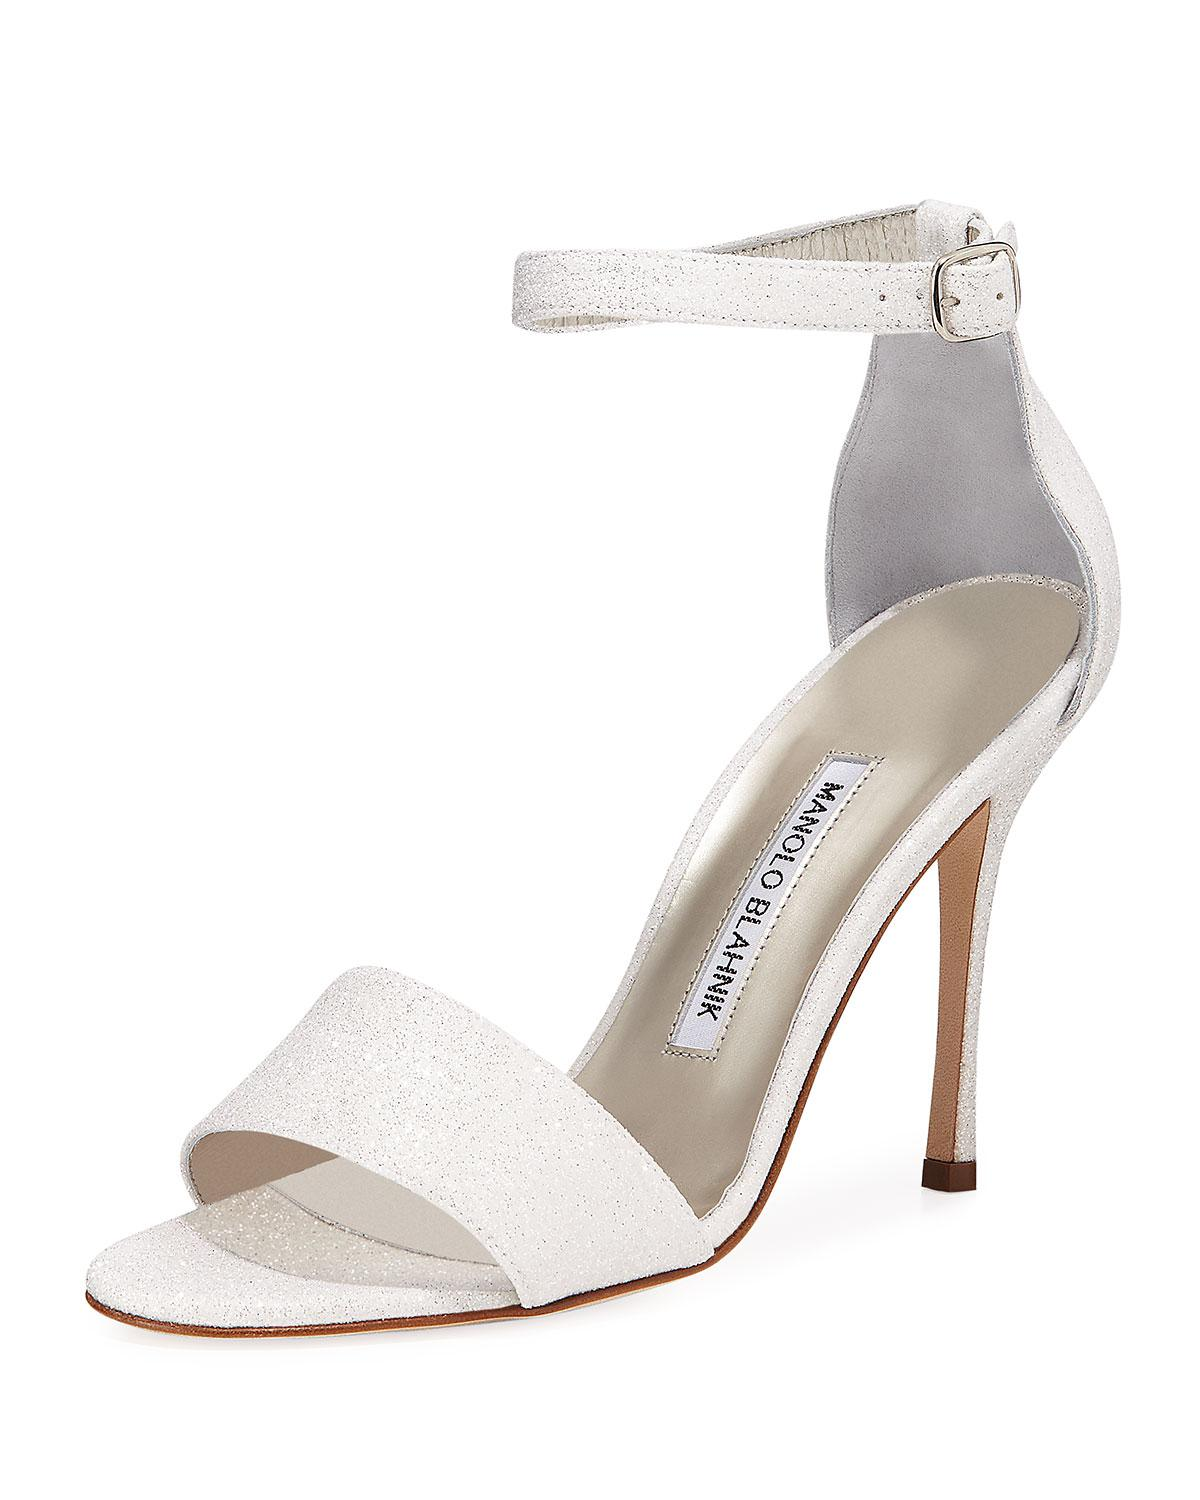 5d61970cc26 Lyst - Manolo Blahnik Tres Glittered D orsay Sandals in White - Save 50%